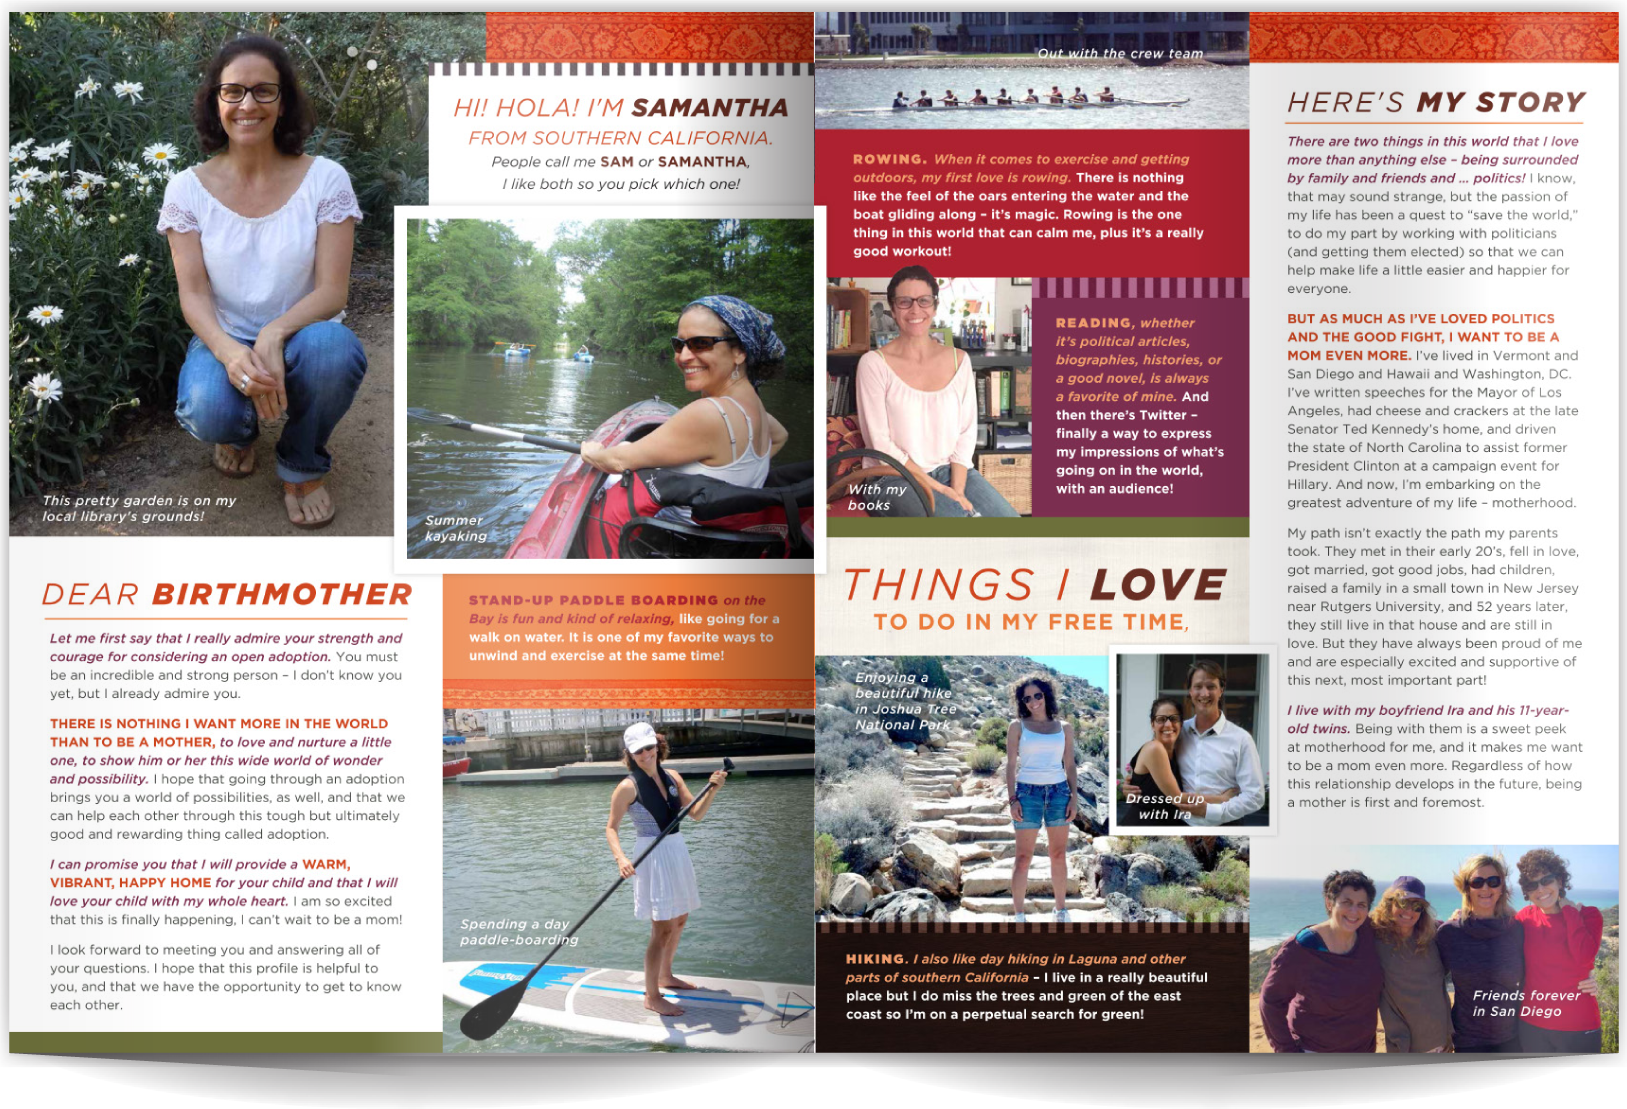 PAGE LAYOUT STYLE 16 - Patterns, rich colors and a varied-yet-linear layout work together to create a profile that's easy-to-read, fun and shares lots of photos and text in an organized and engaging way. The darker colors make great backgrounds for inverse type. Pattern and bold colors are a great way to add dimension to a more modern layout with simple typography.